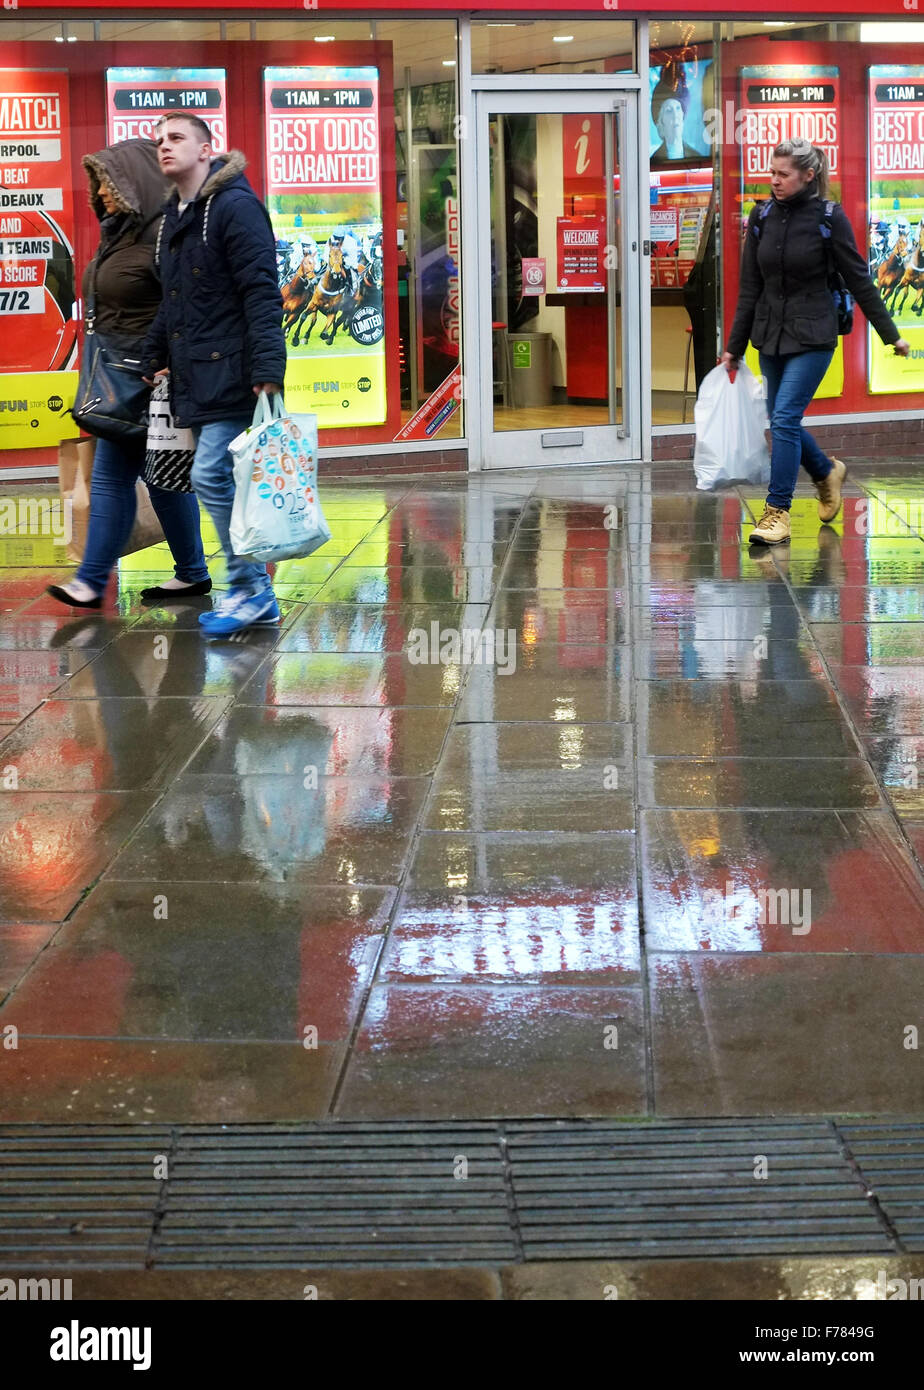 Shoppers walk on the reflective pavements after rainfall in Oldham, Lancashire, UK - Stock Image